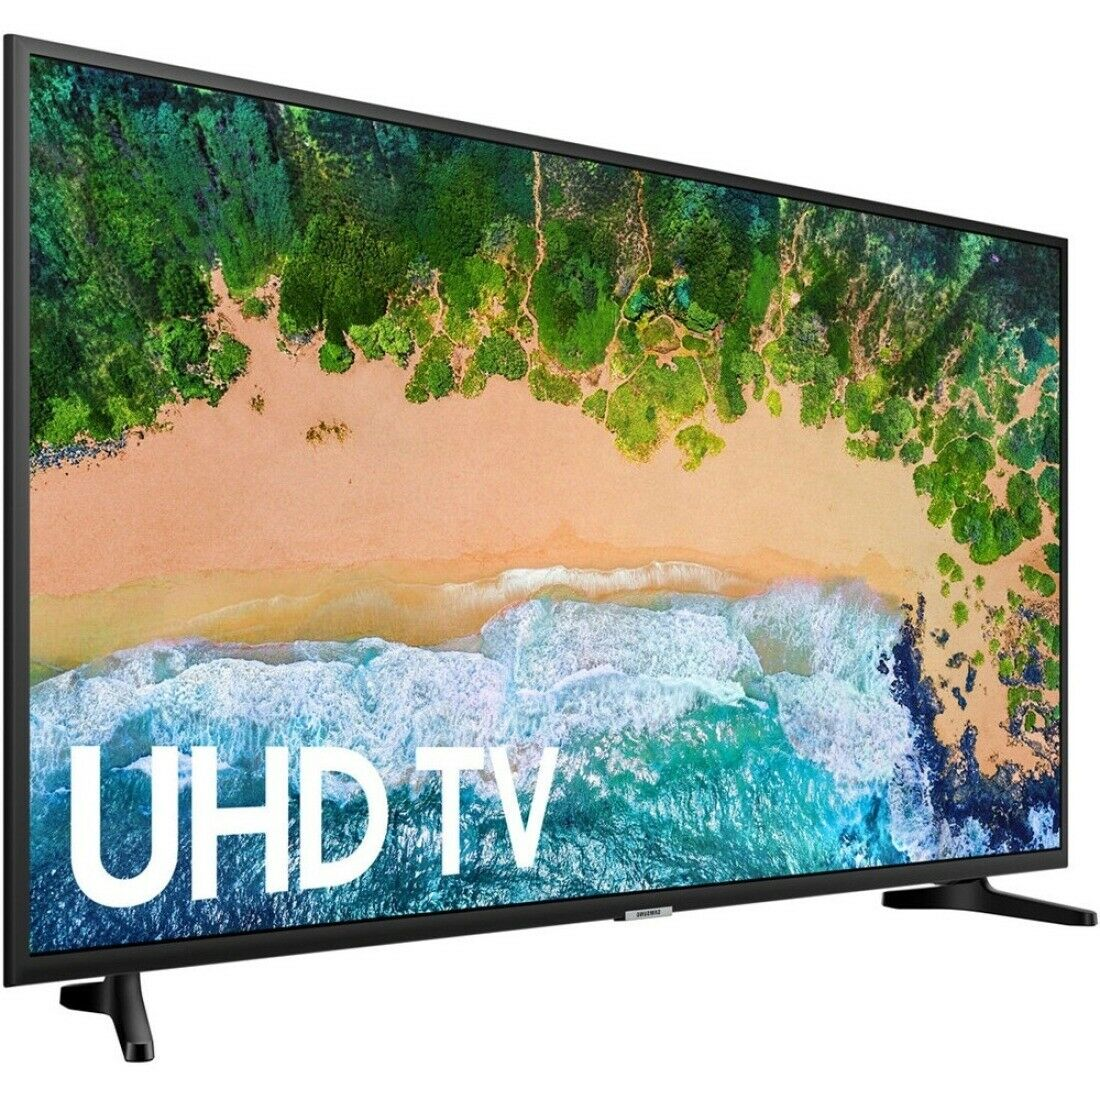 Samsung UN65NU6900 65-inch 4K Ultra LED Smart TV UN65NU6900FXZA. Buy it now for 649.49